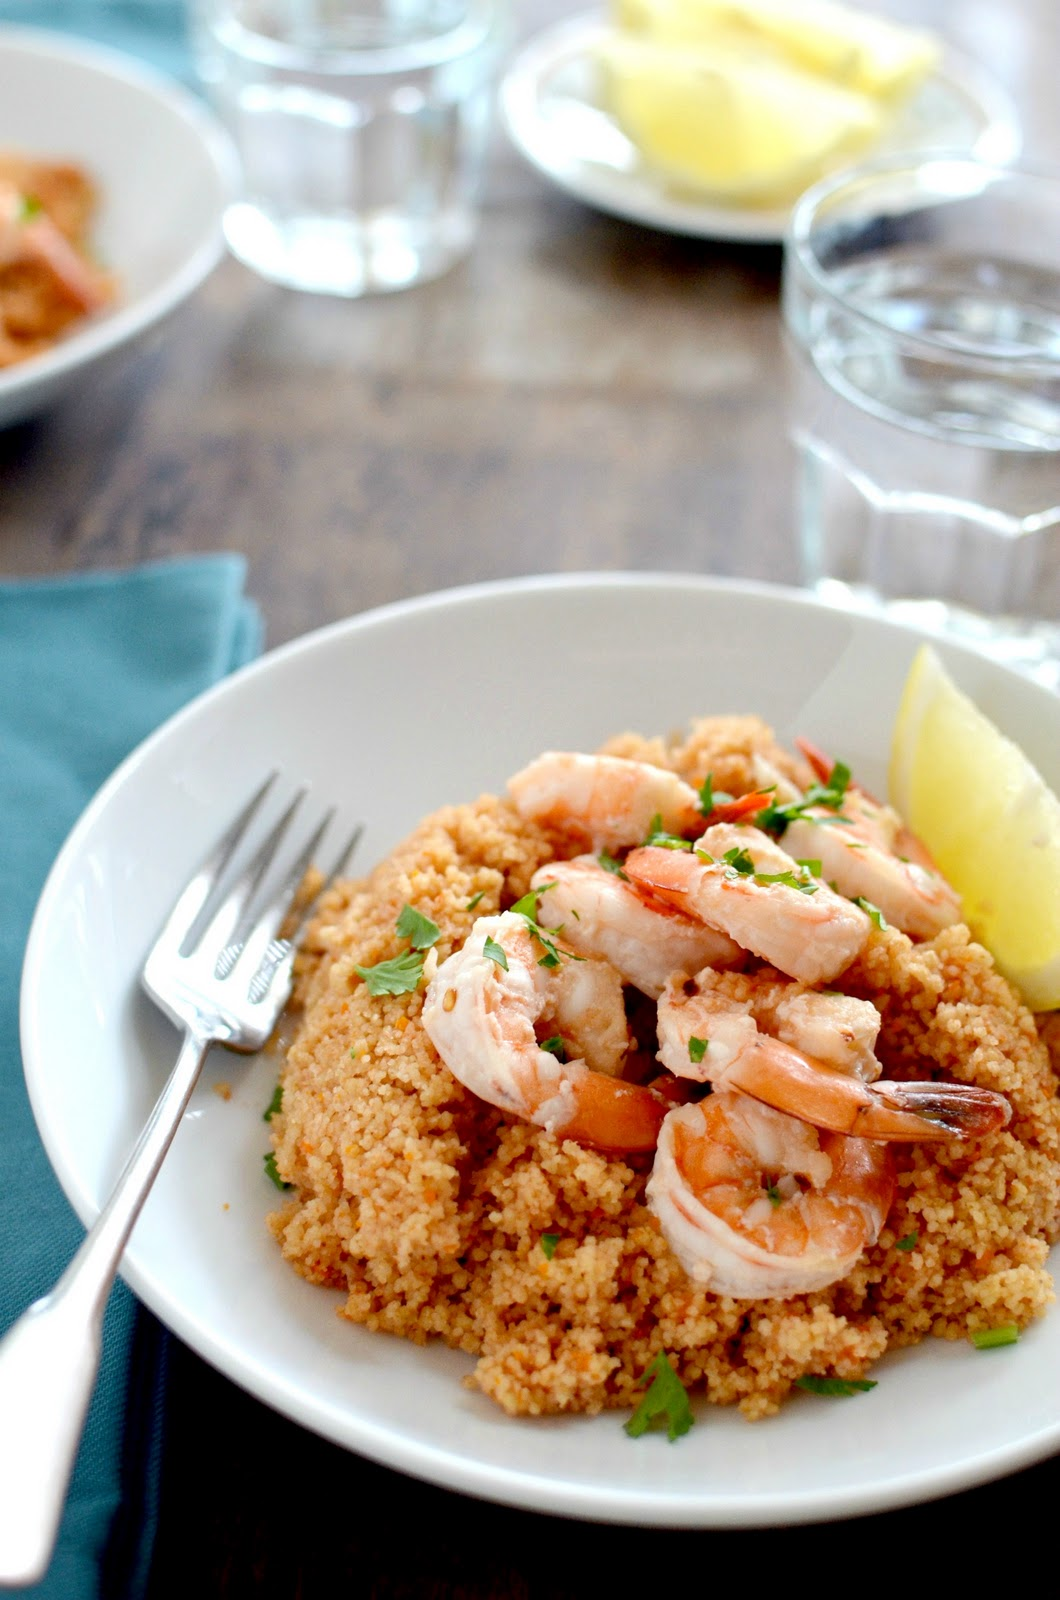 Apricosa: Shrimp Scampi on Couscous